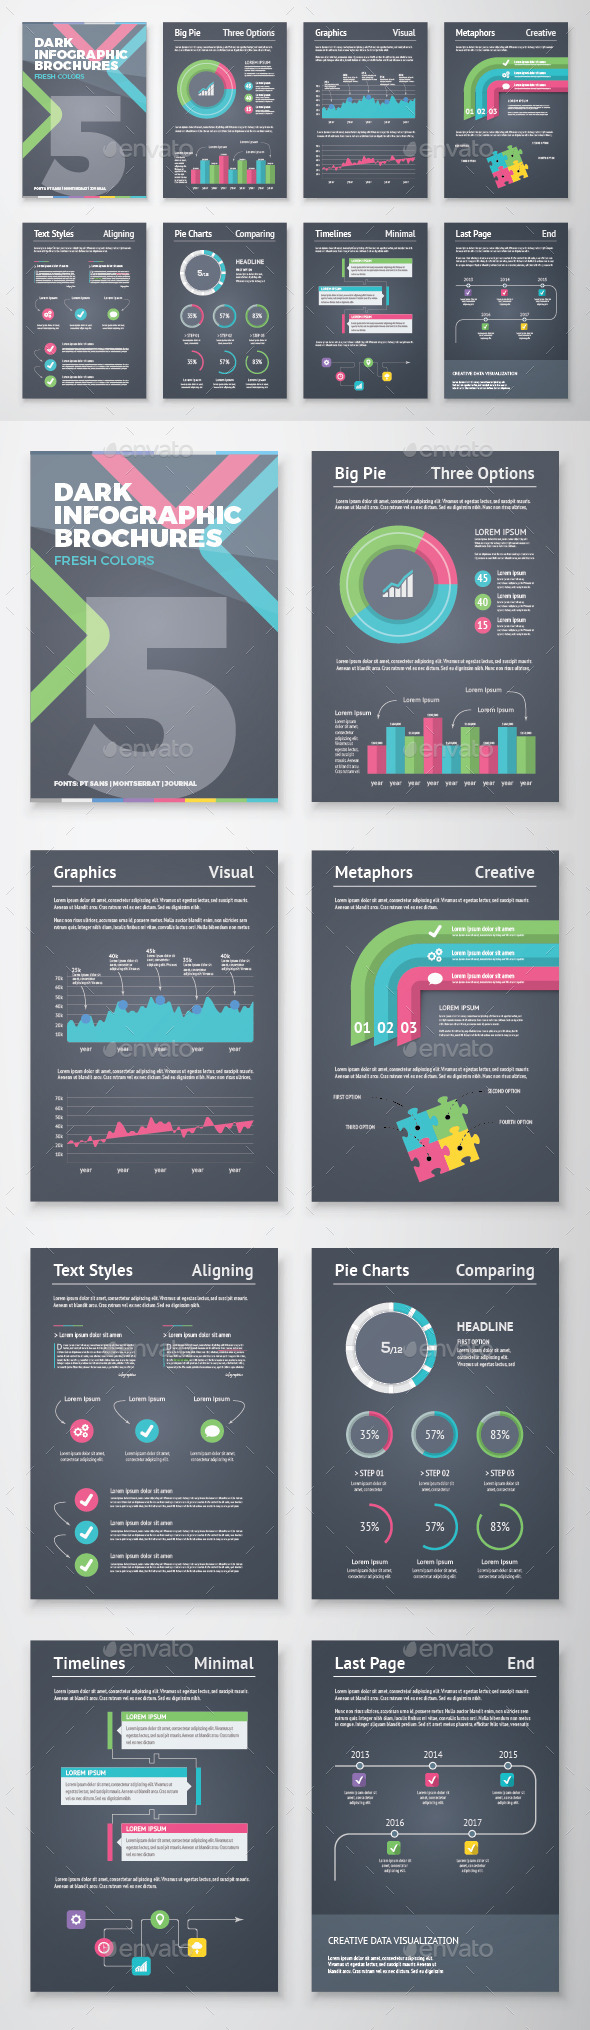 GraphicRiver Dark Infographic Brochure Vector Elements Kit 5 11529472